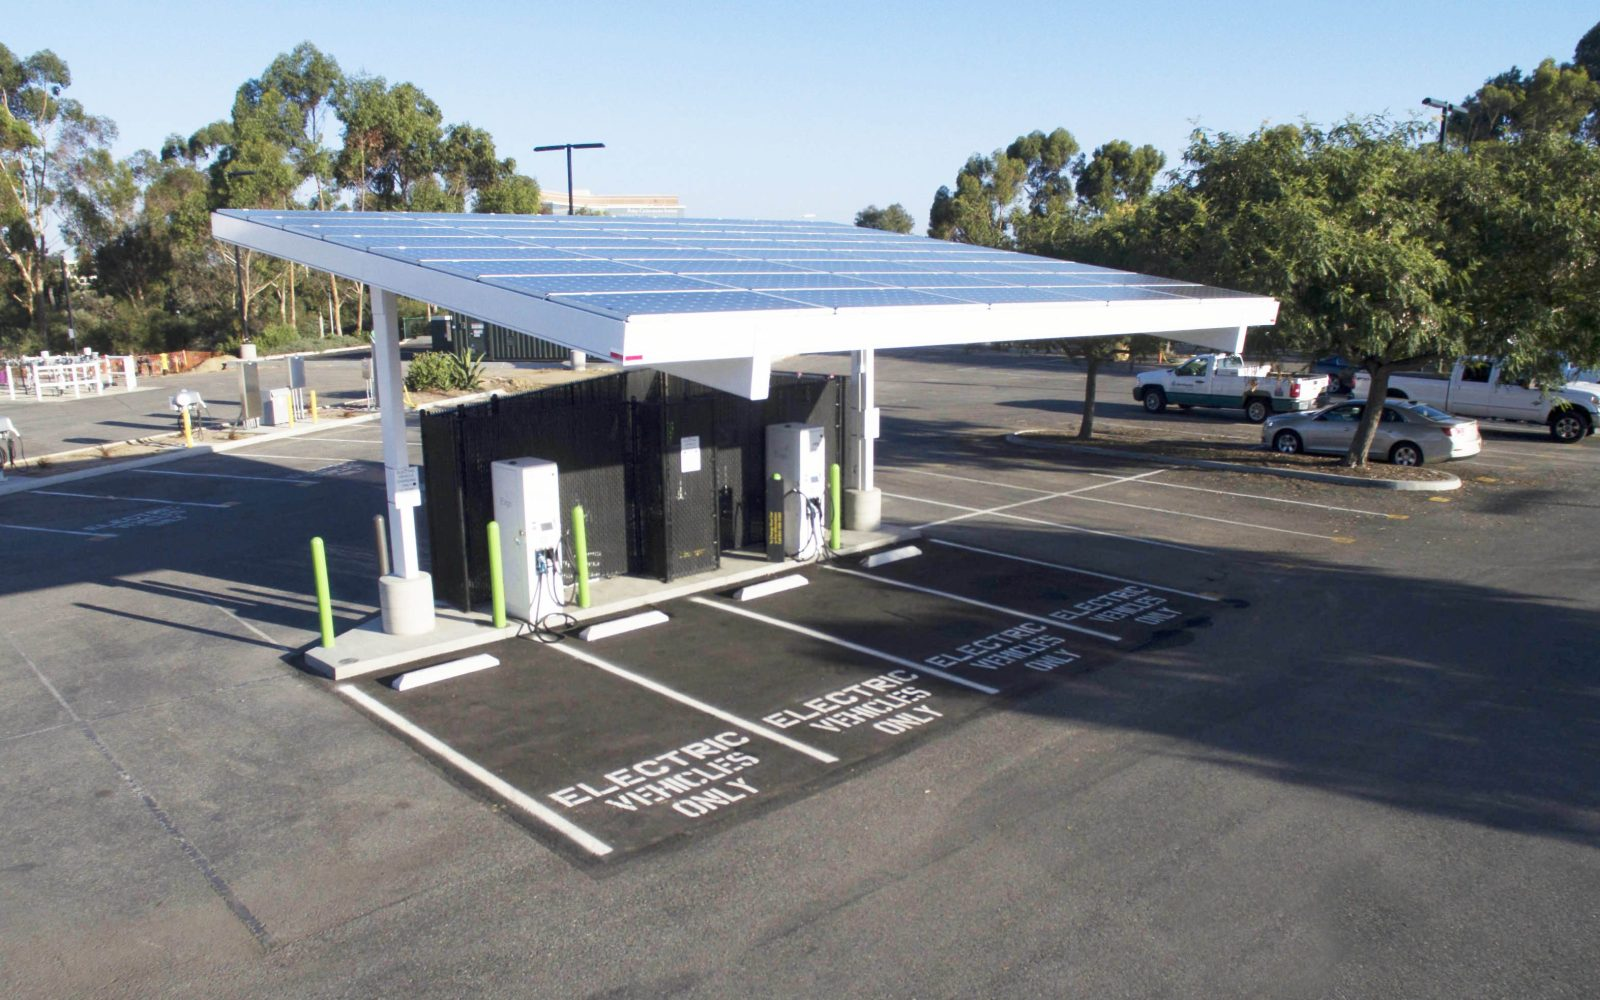 The first electric vehicle DC fast-charging station capable of 350 kW output breaks ground in California